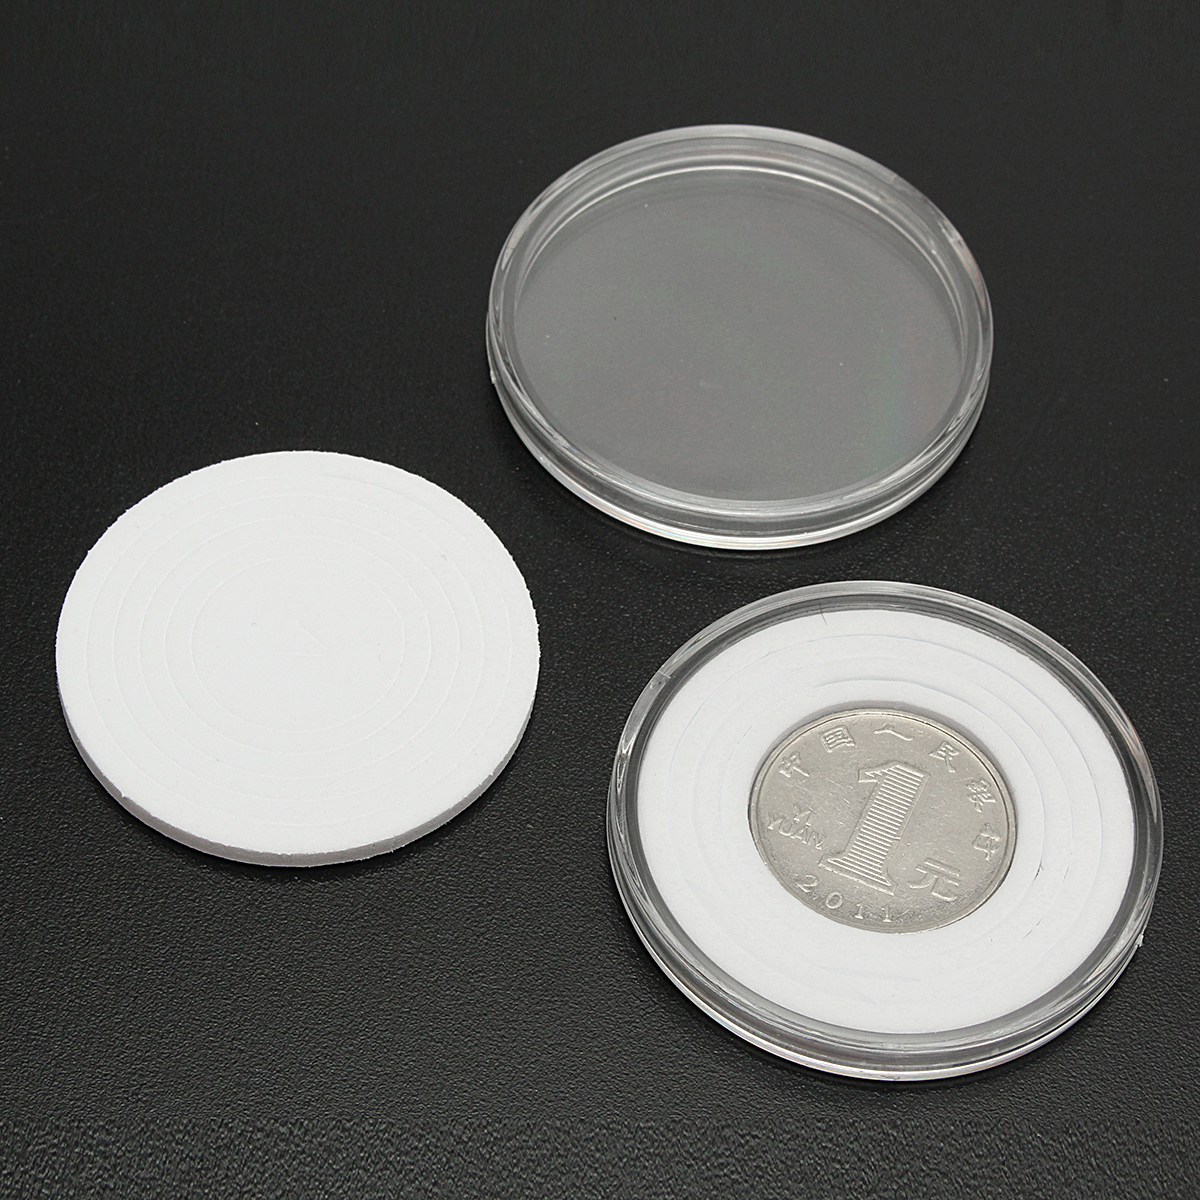 20Pcs Clear Round Coins Holder 46mm Capsules Stroage Case Box Container Display Collection